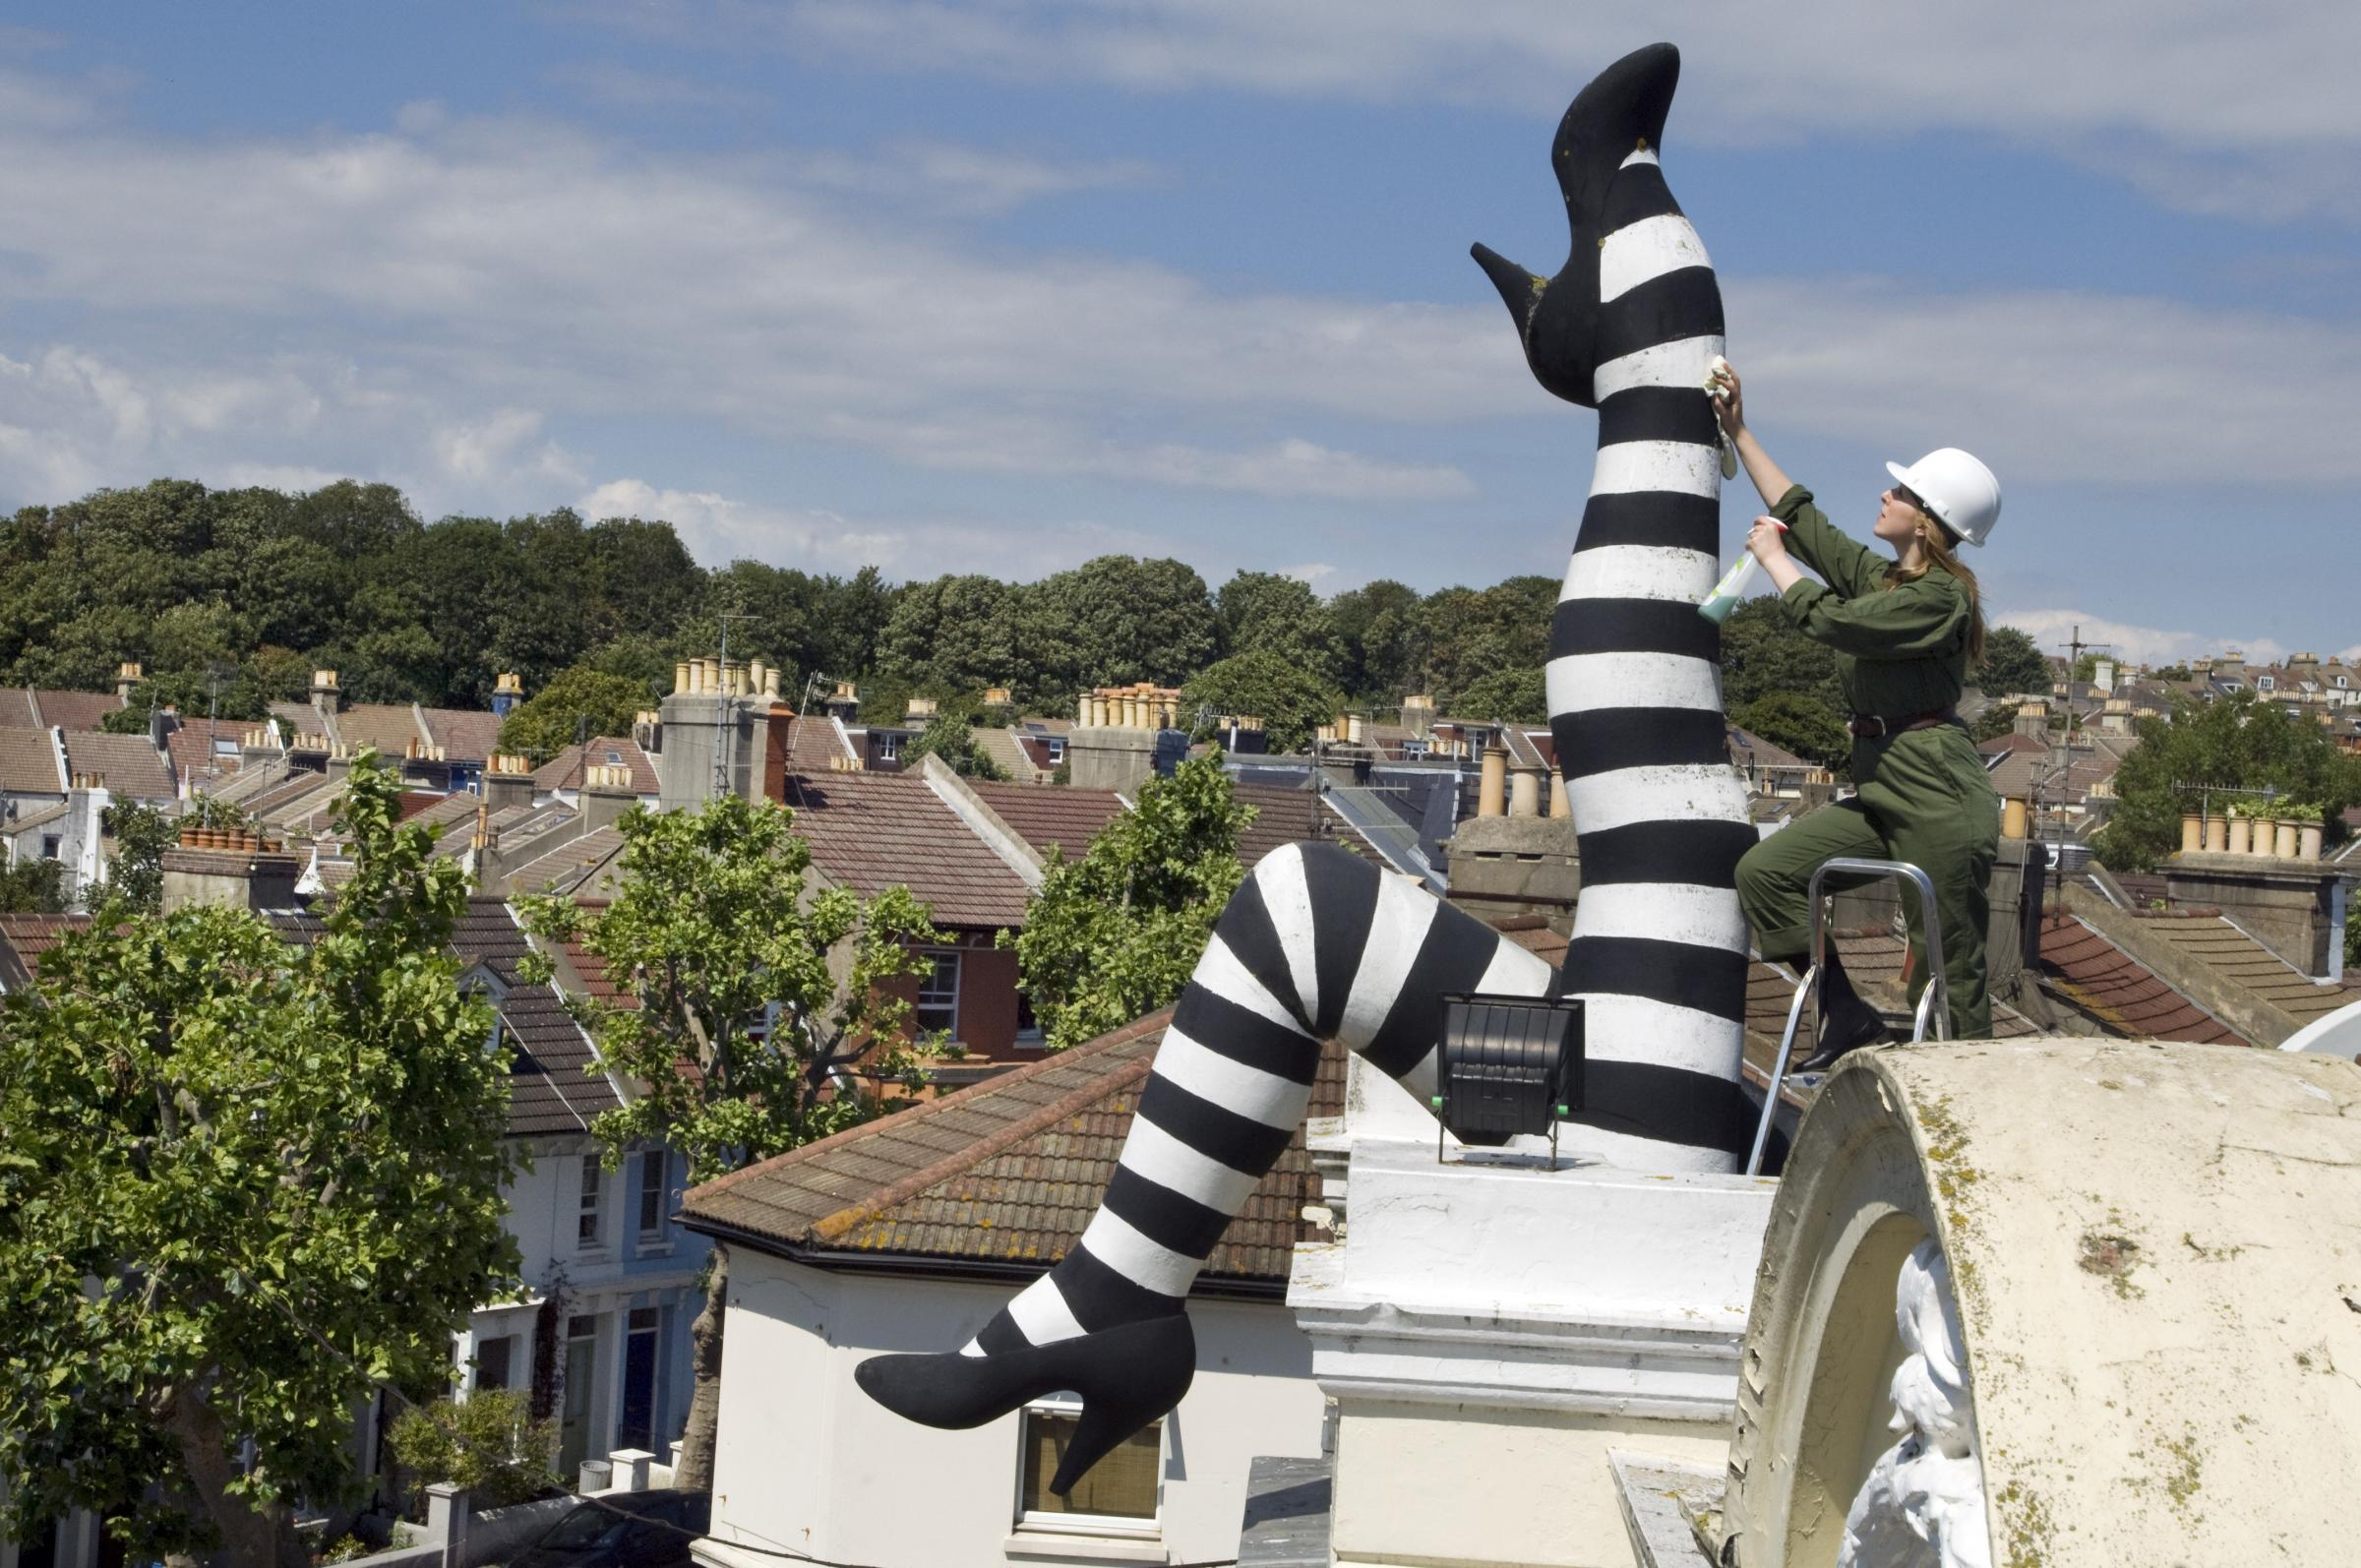 Picture by Roger Bamber:20 July 2010:Duke of Yorks cinema duty manager Emily Eastwood cleans the iconic sculptured striped legs on the roof of the Duke of Yorks cinema in Brighton, East Sussex, England UK. The Cinema celebrates its Centenary on 22